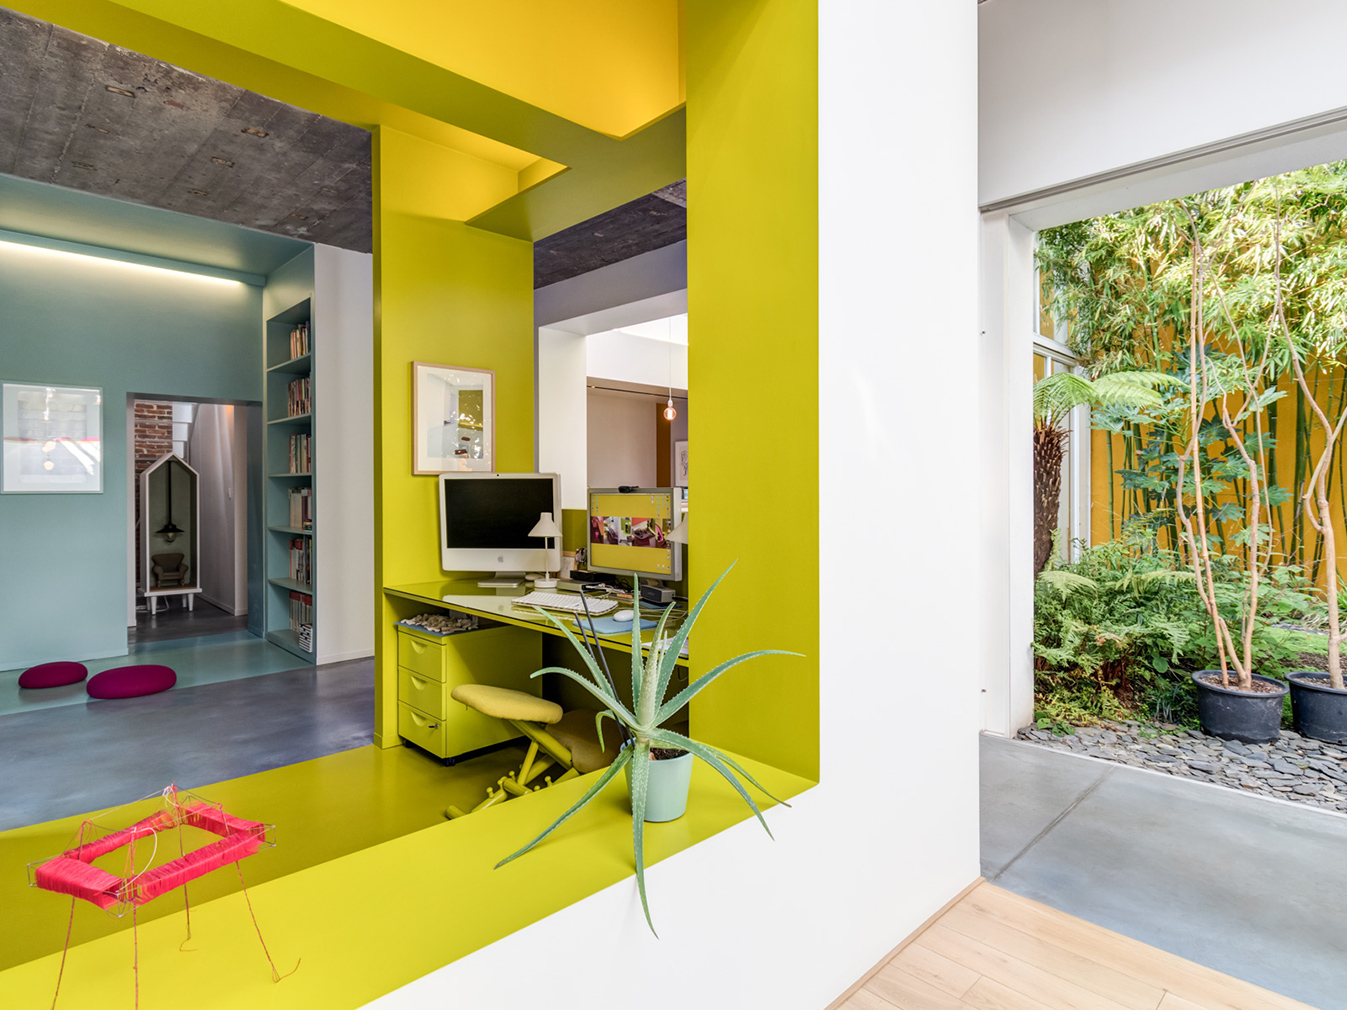 Property of the week: a creative duo's spectacular live/work space in Antwerp